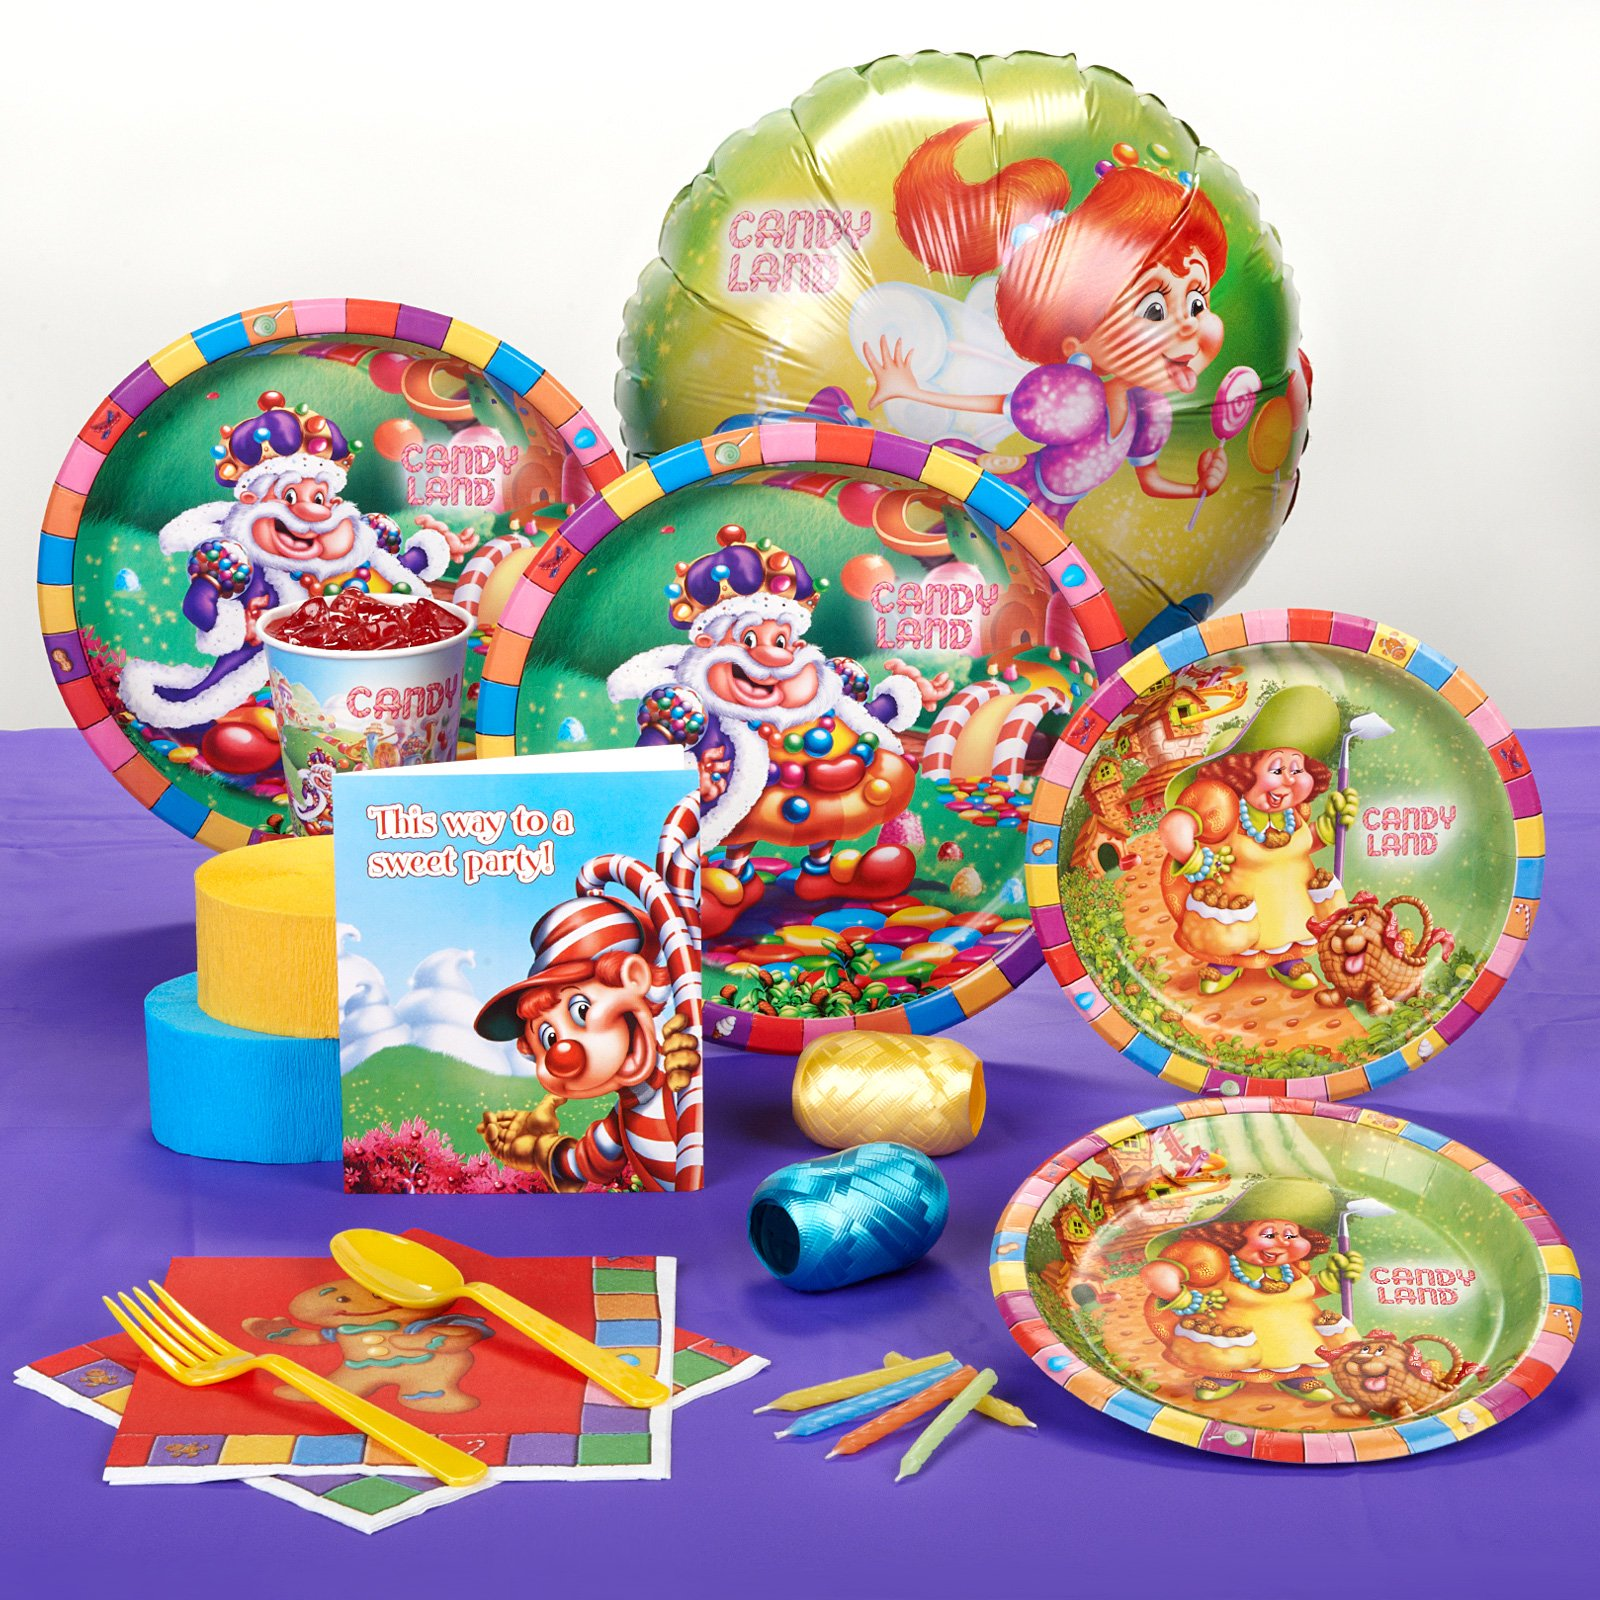 Candy Land Standard Party Pack for 8